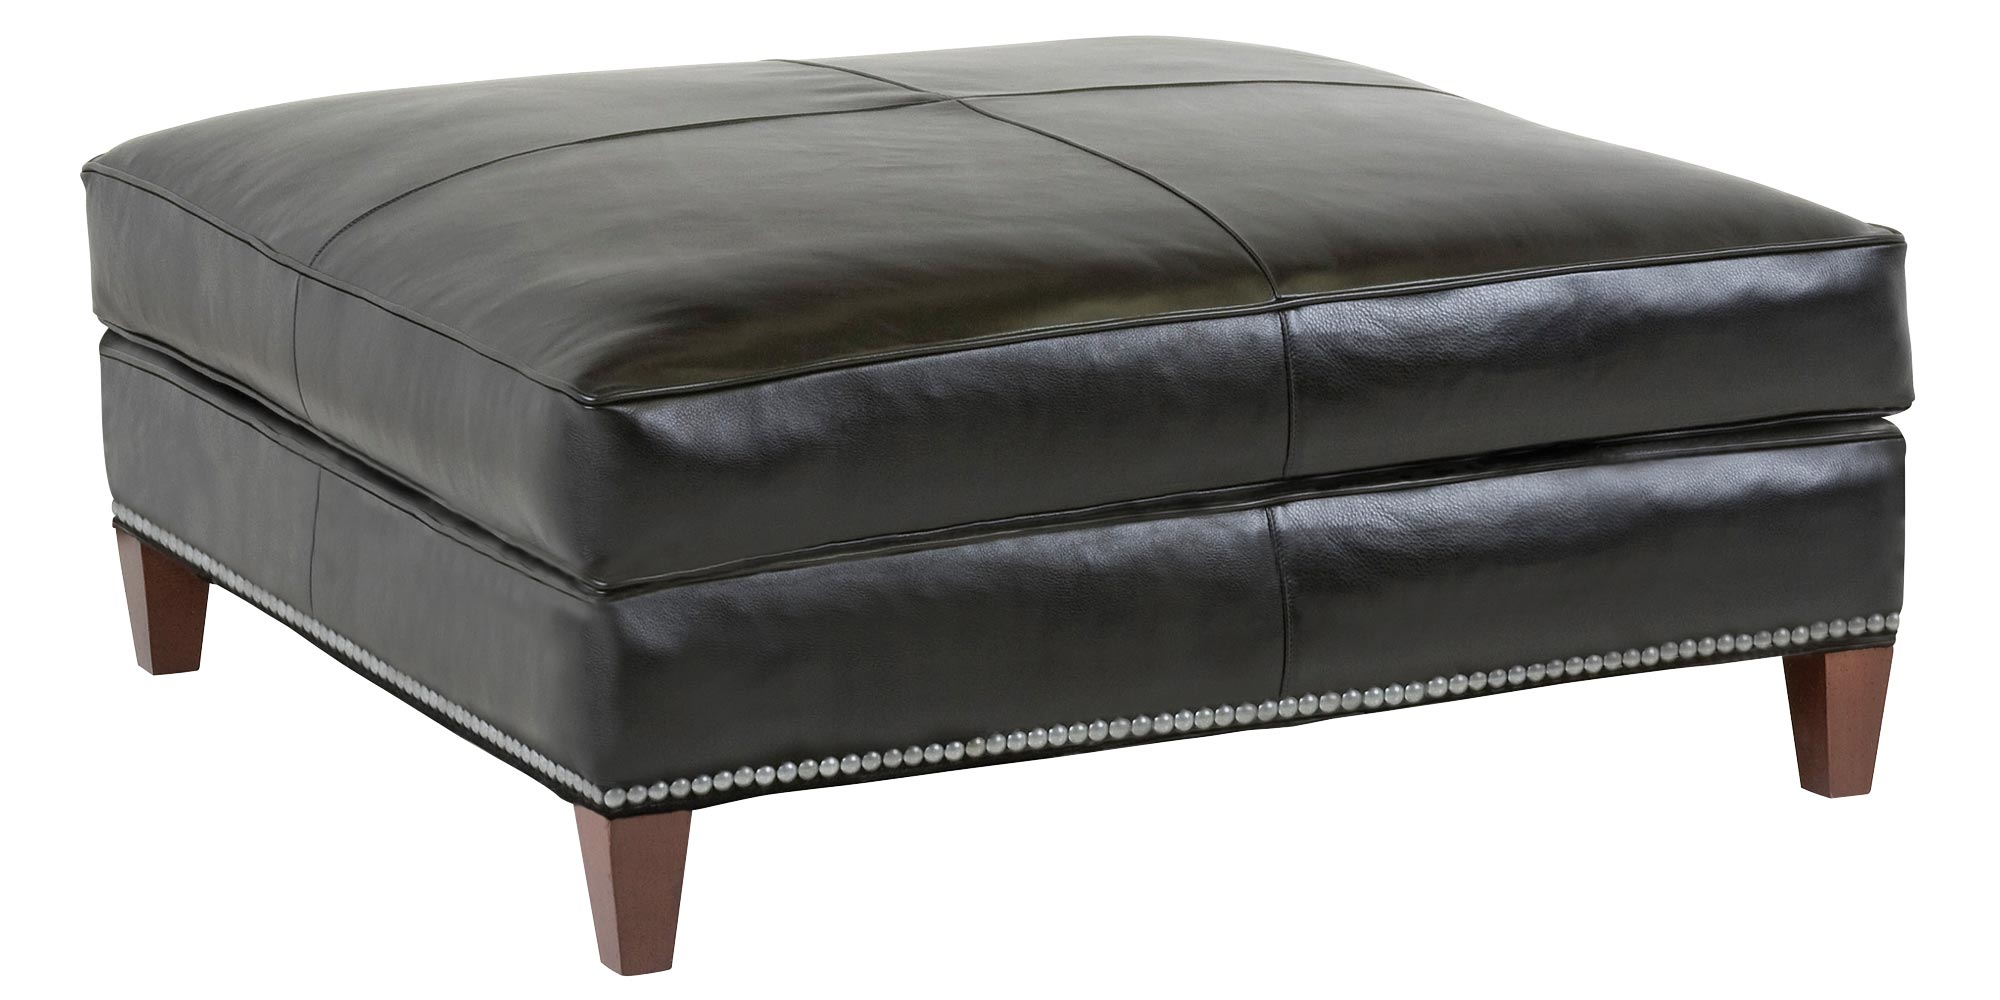 Large Black Leather Square Cocktail Ottoman : ward designer style square leather cocktail ottoman w nailhead trim 7 from www.clubfurniture.com size 2000 x 1000 jpeg 147kB